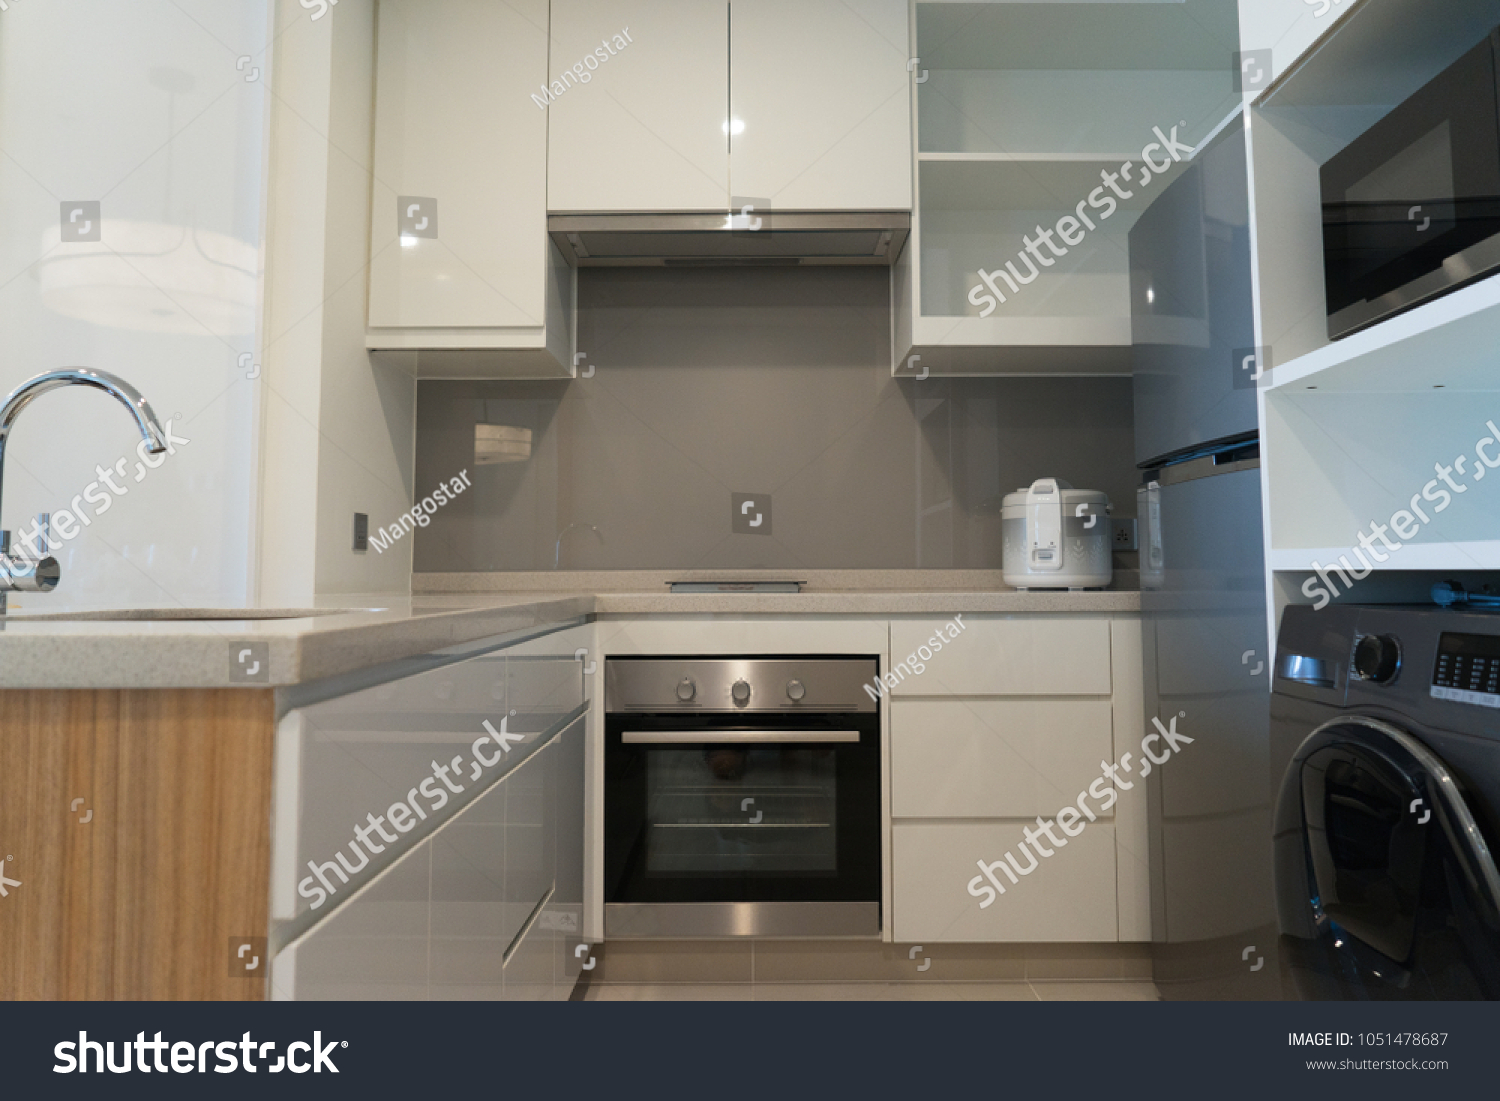 Modern kitchen with minimalist design small kitchen set equipped with appliances such like freezer